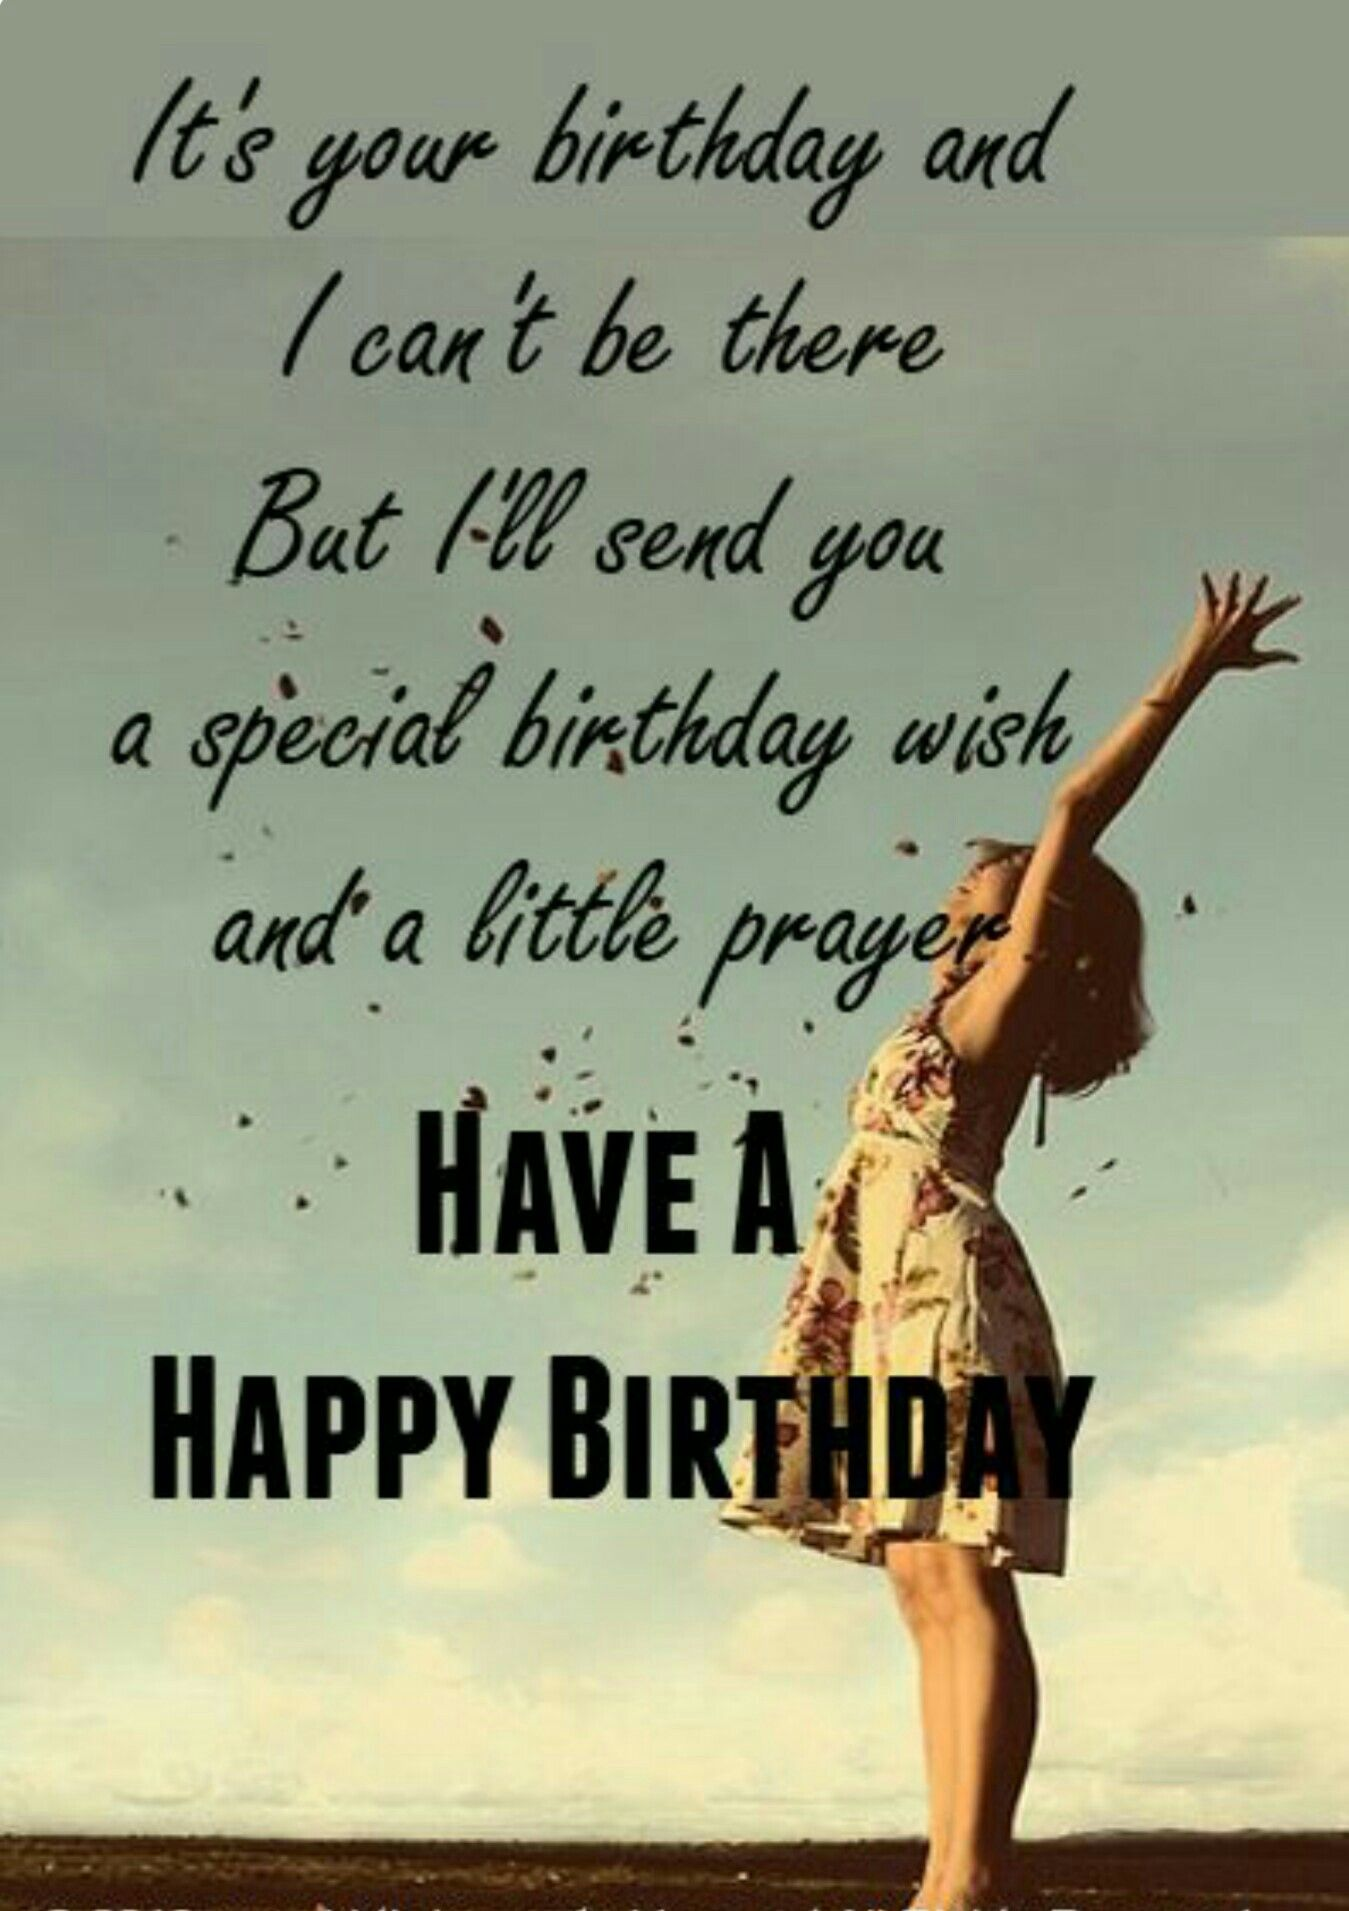 Pin by Alyson Turco on Happy Birthday | Pinterest ...